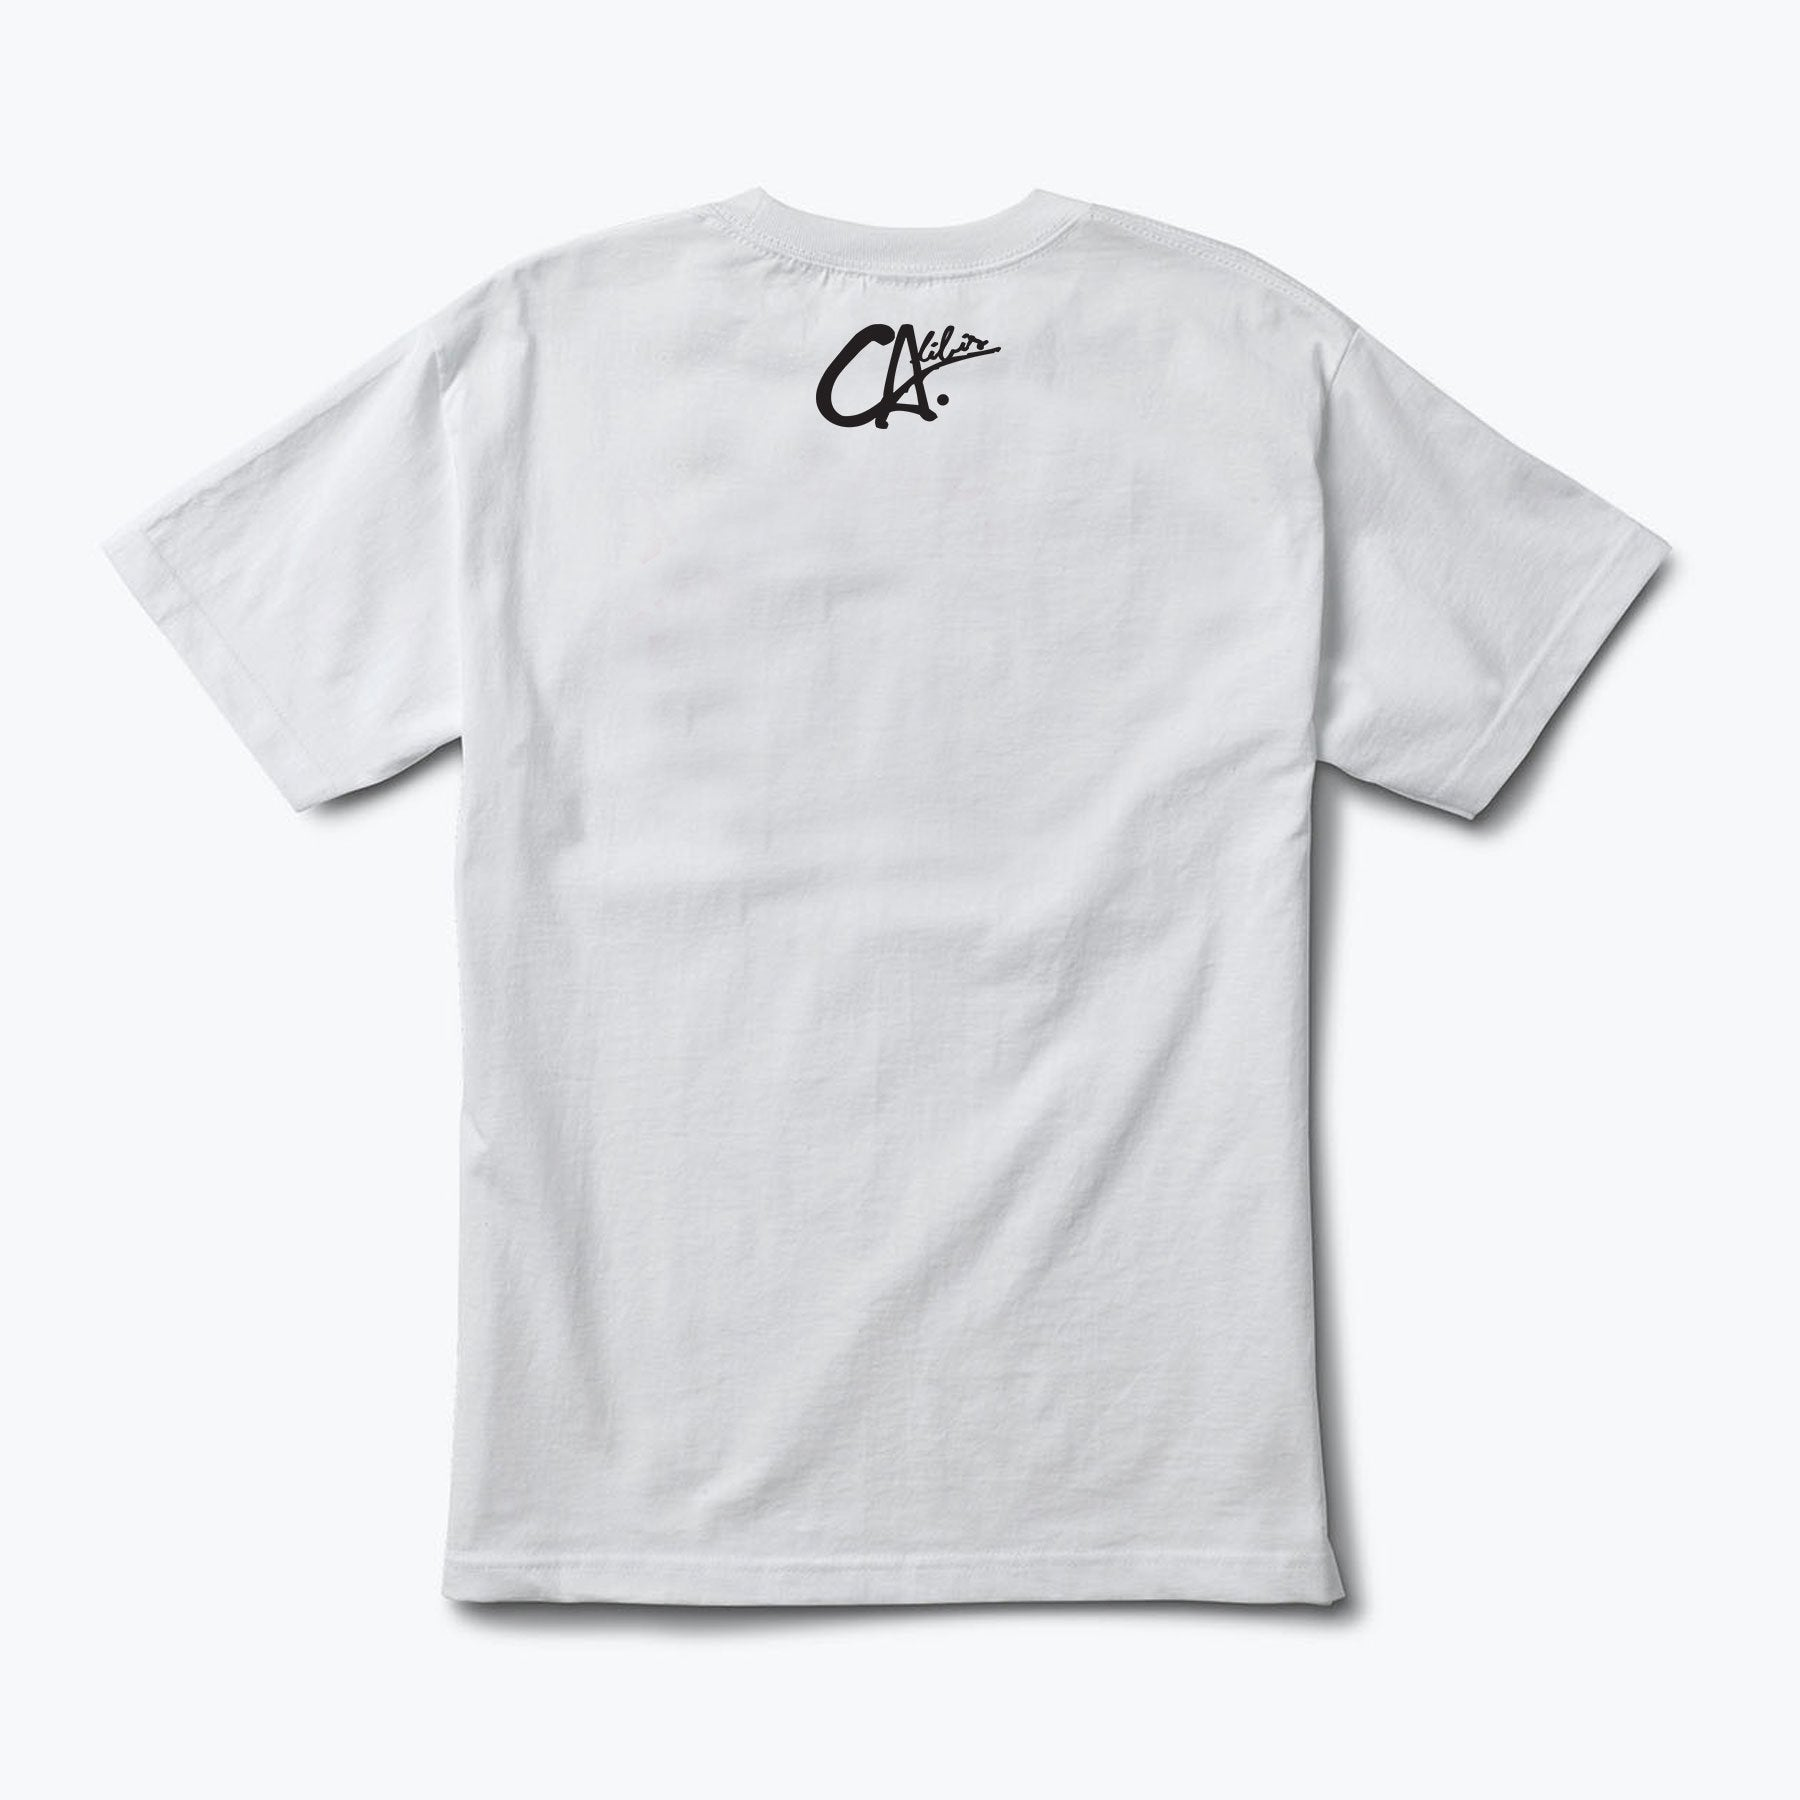 Geo Tee by Calibis Clothing